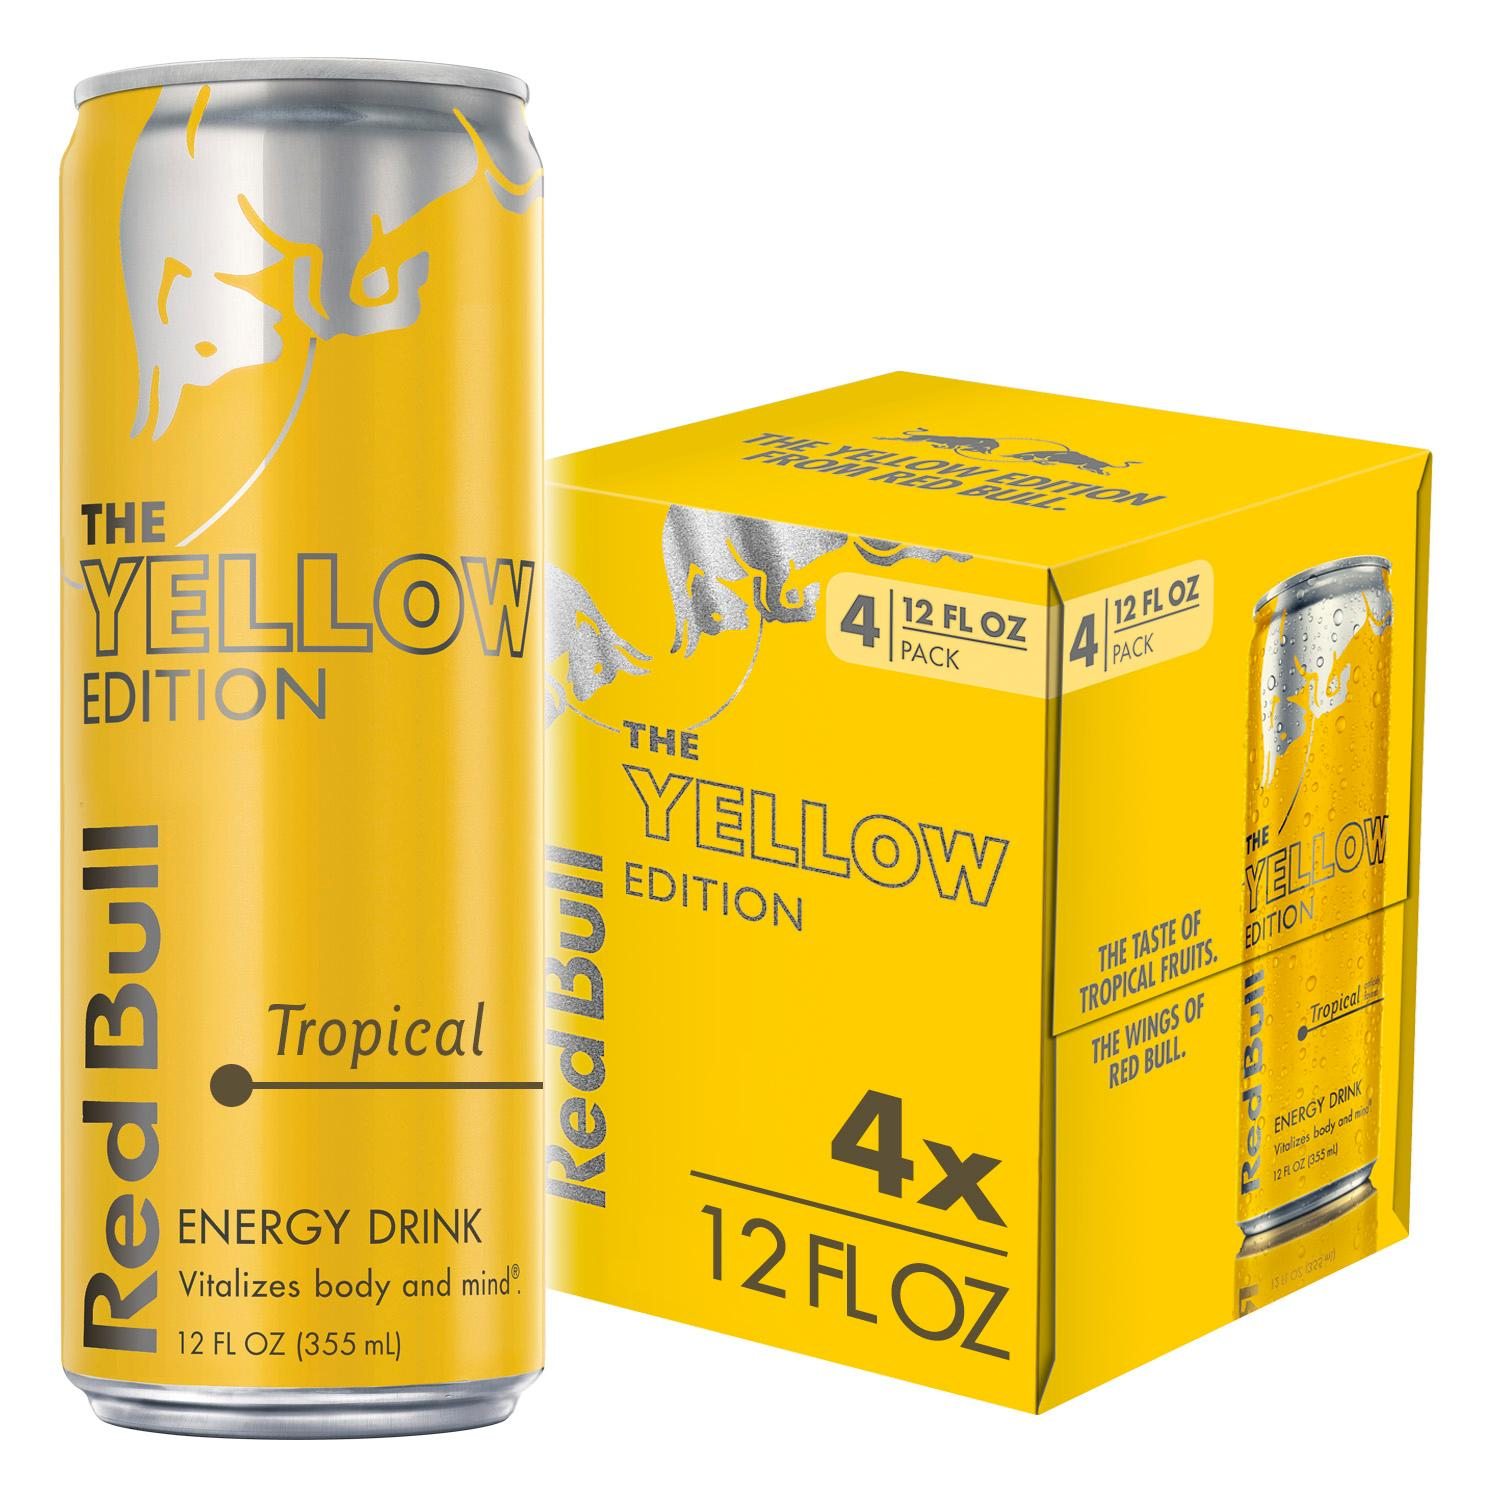 4 Cans Red Bull Energy Drink Tropical 12 Fl Oz Yellow